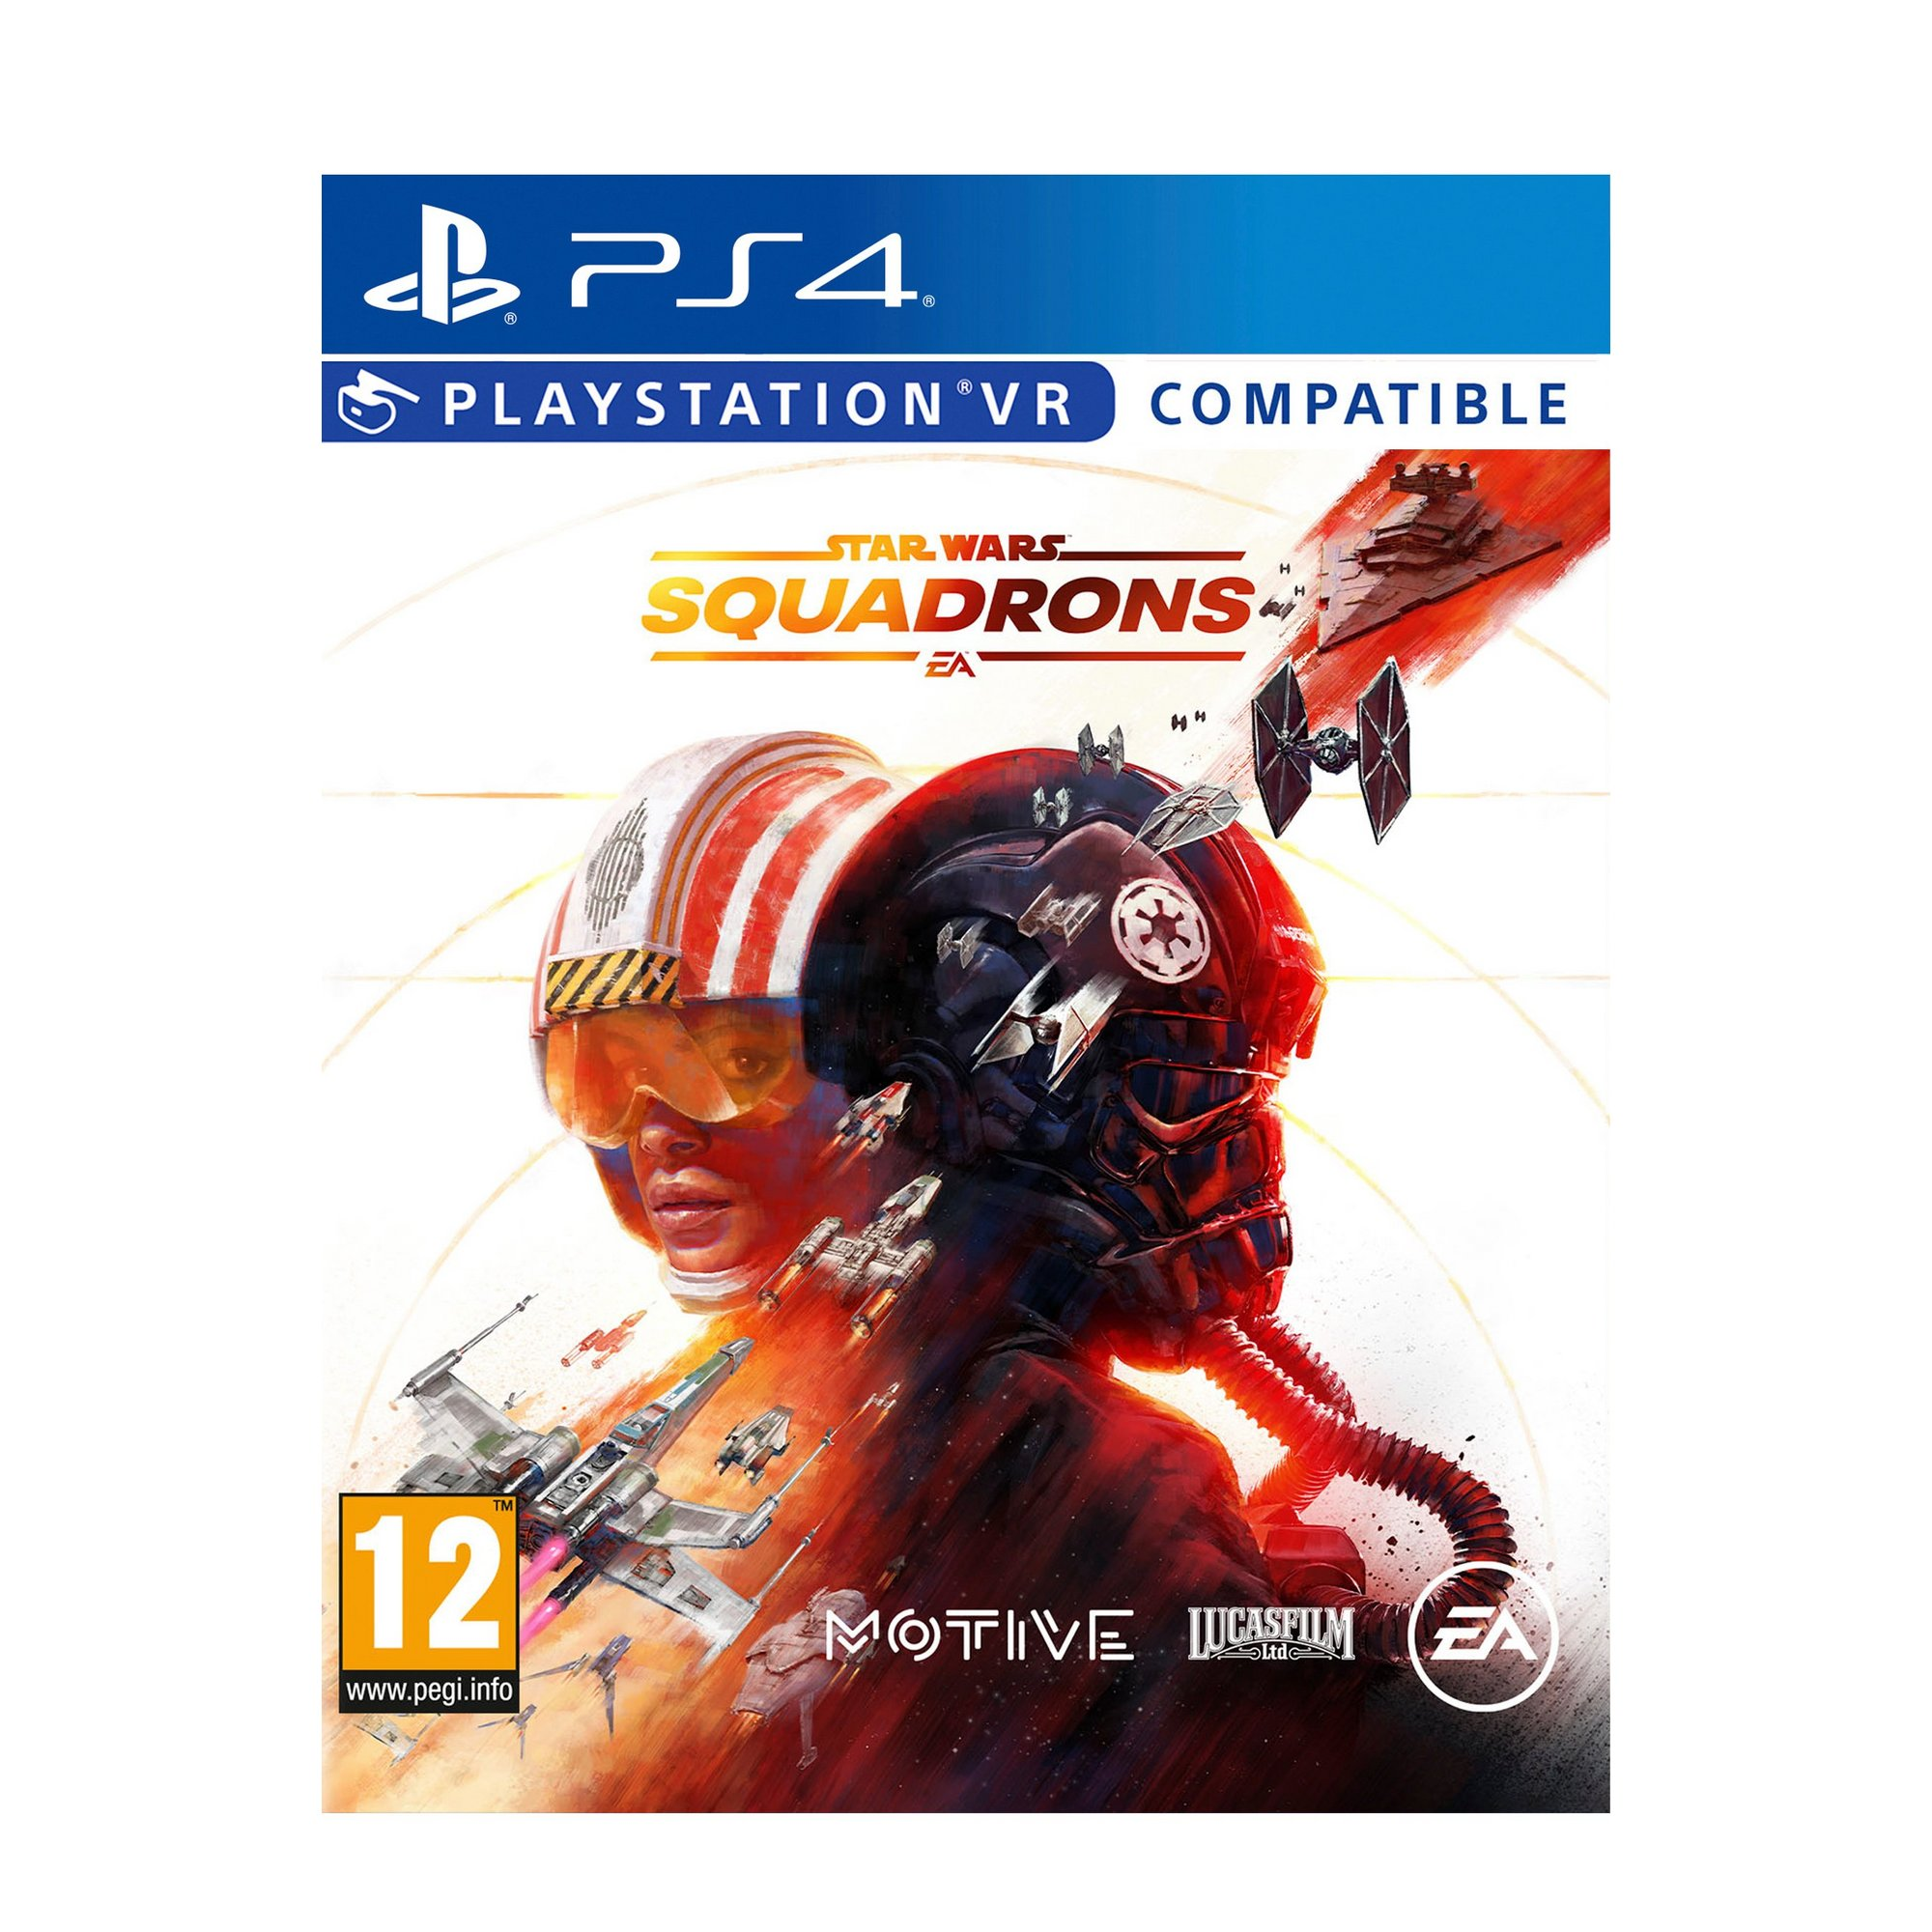 Image of PS4: Star Wars: Squadrons